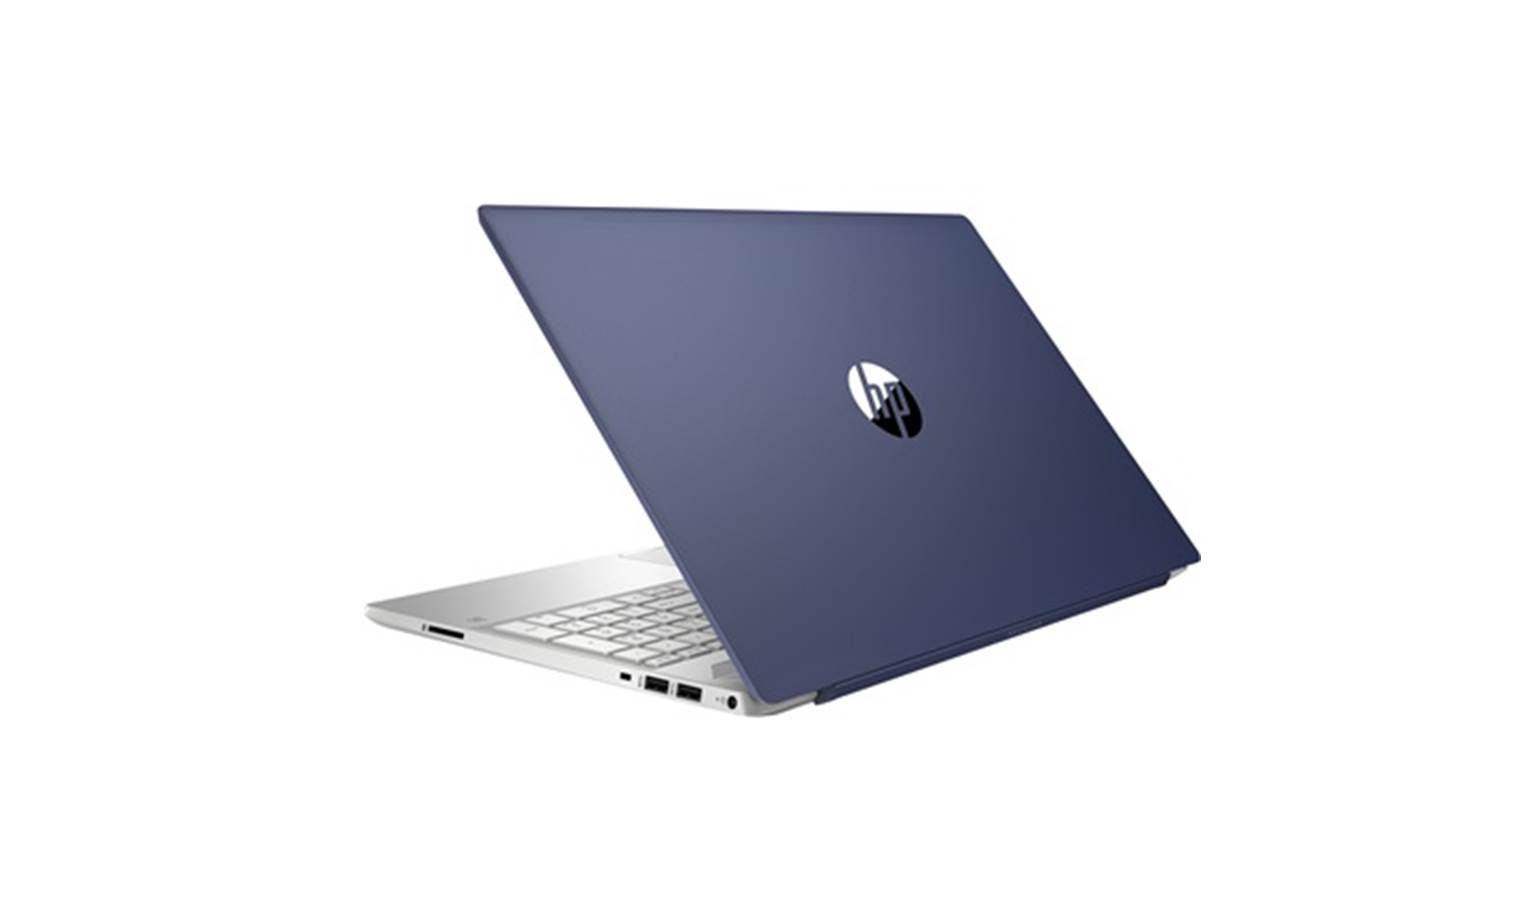 HP Pavilion 15-CS0077TX (8th Gen Intel i5-8250U Processor, 8GB RAM, NVIDIA GeForce MX150 2GB GDDR5, 1TB HDD)